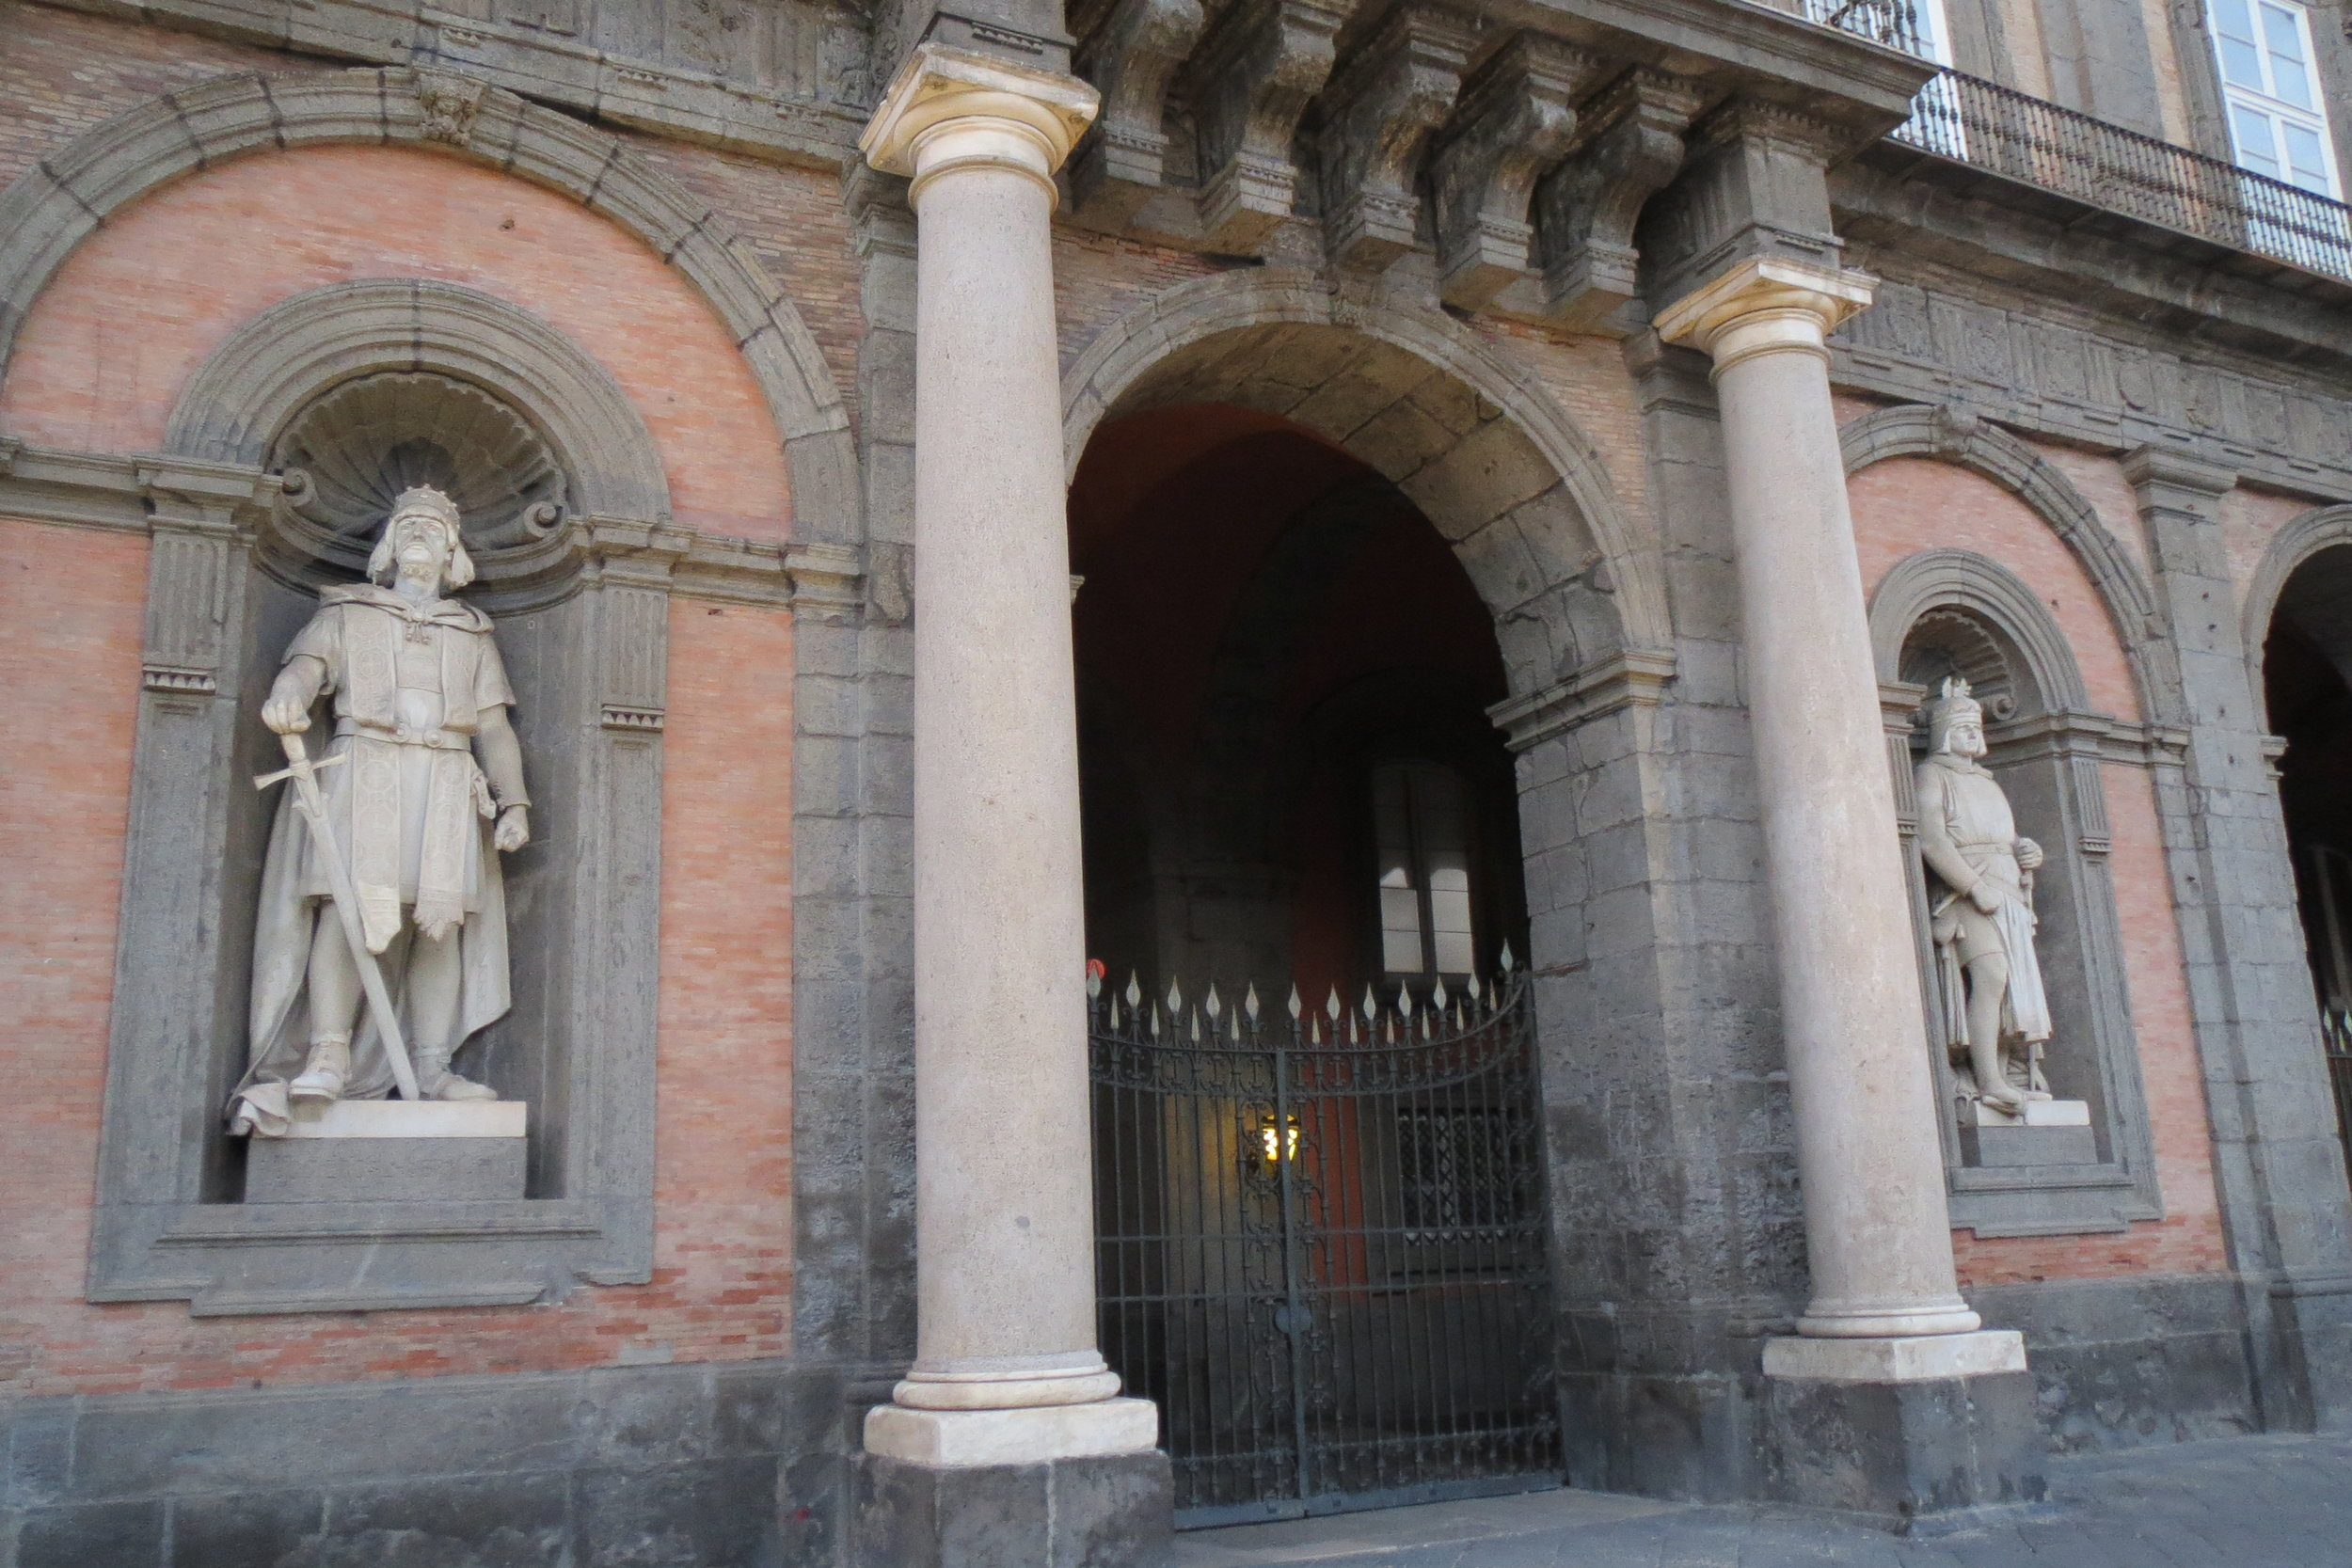 The niches with statues of the Kings of Napoli on the main façade in Piazza Plebiscito.